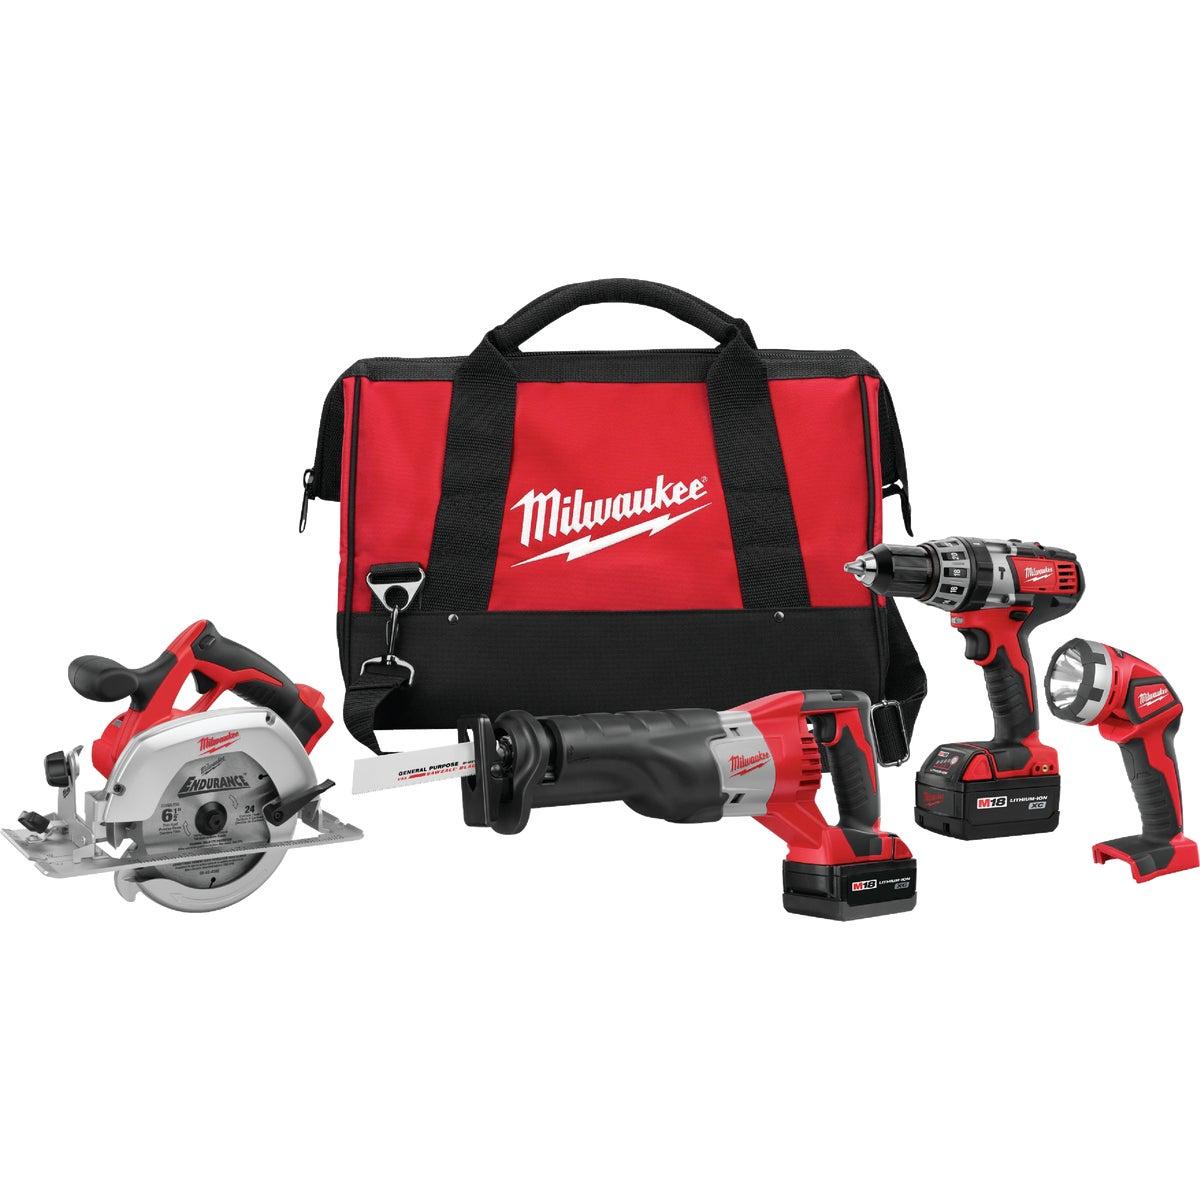 M18 4-TOOL COMBO KIT - 269424 by Milwaukee Elec Tool